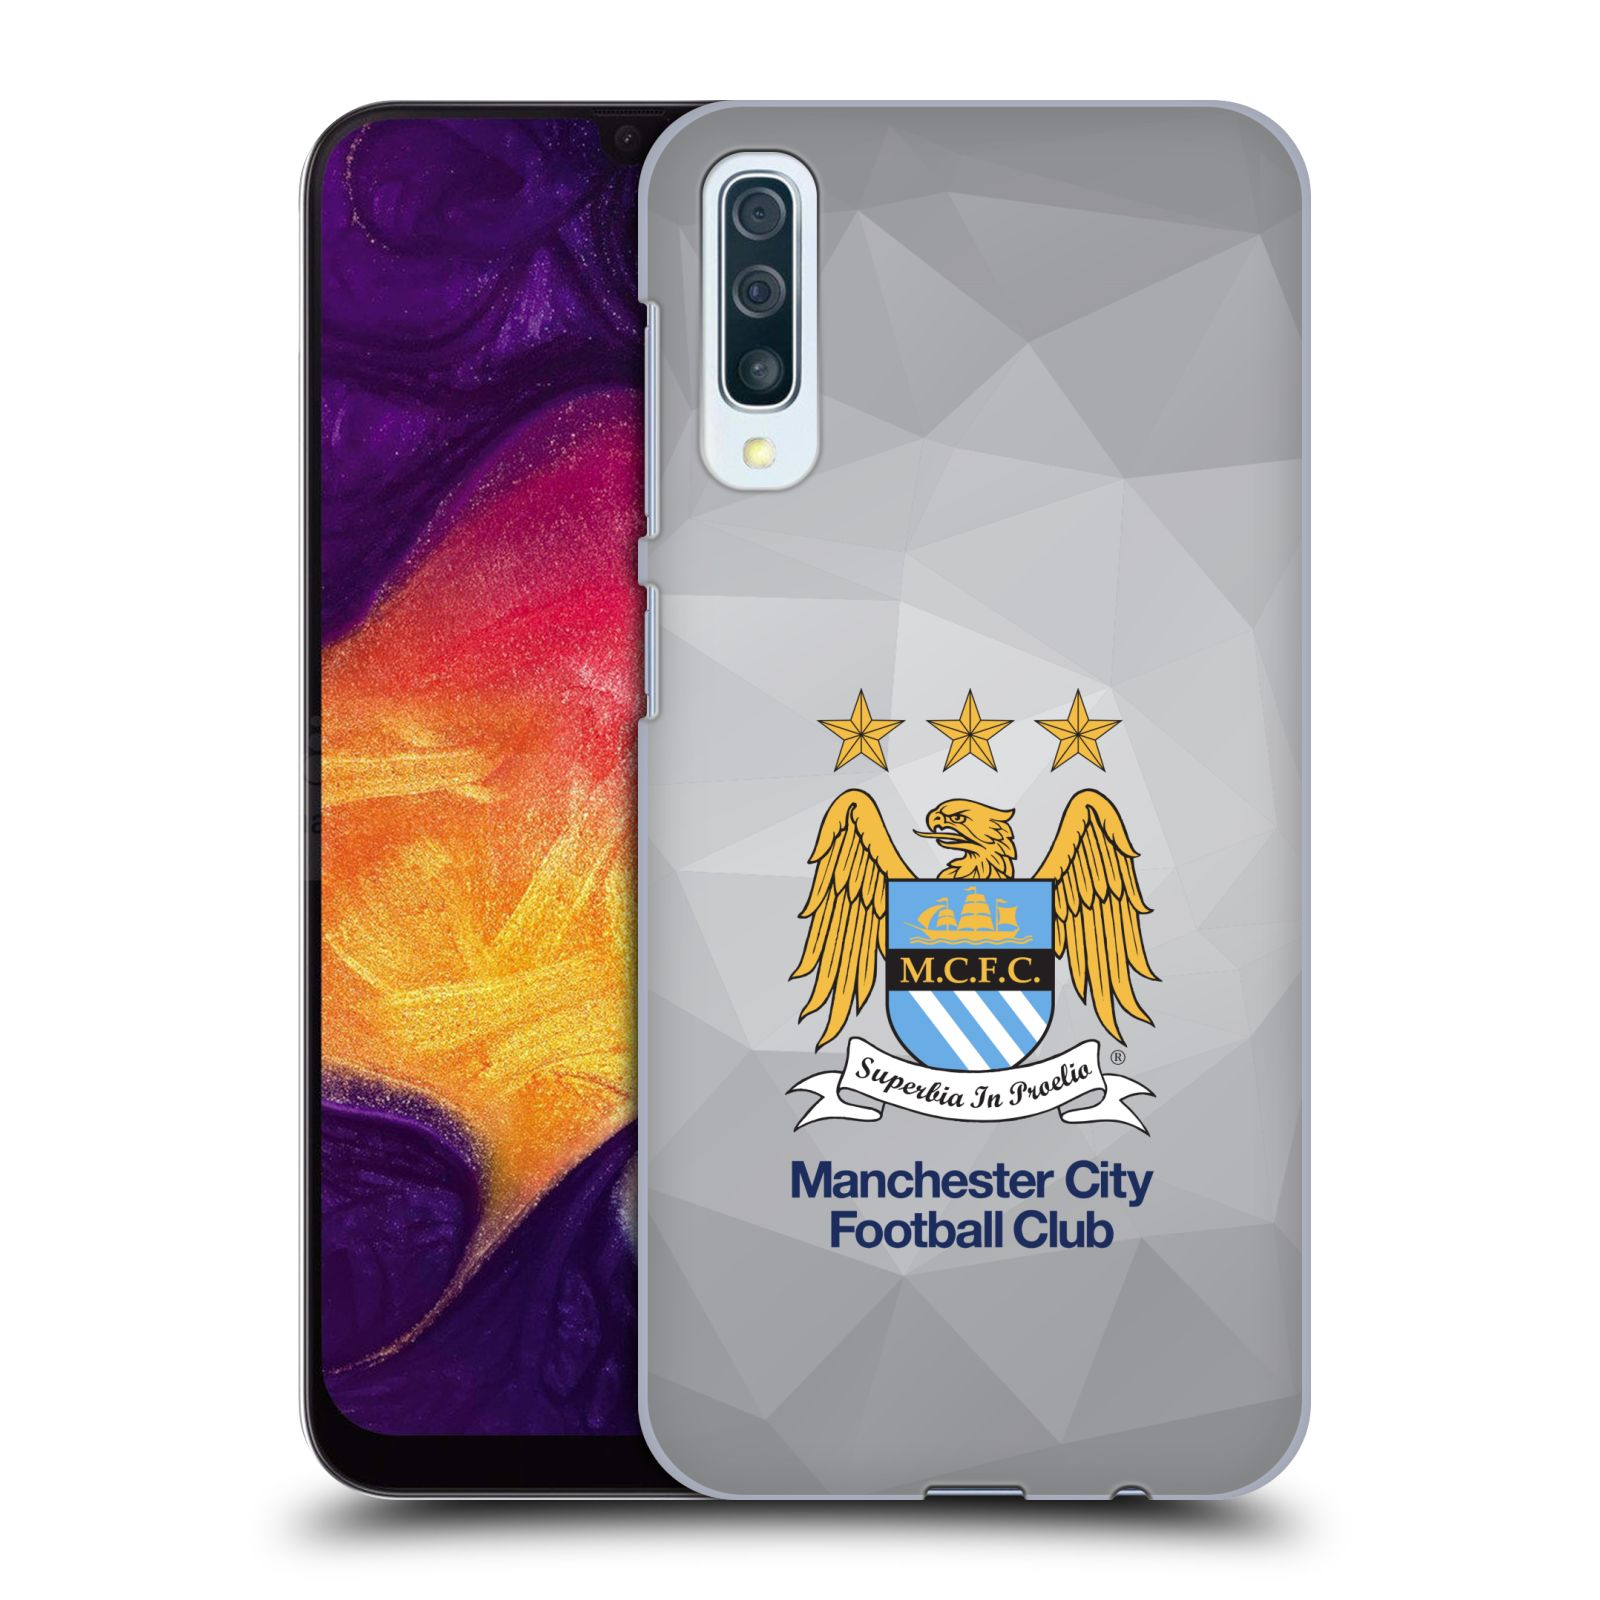 Plastové pouzdro na mobil Samsung Galaxy A50 - Head Case - Manchester City FC - Football Club